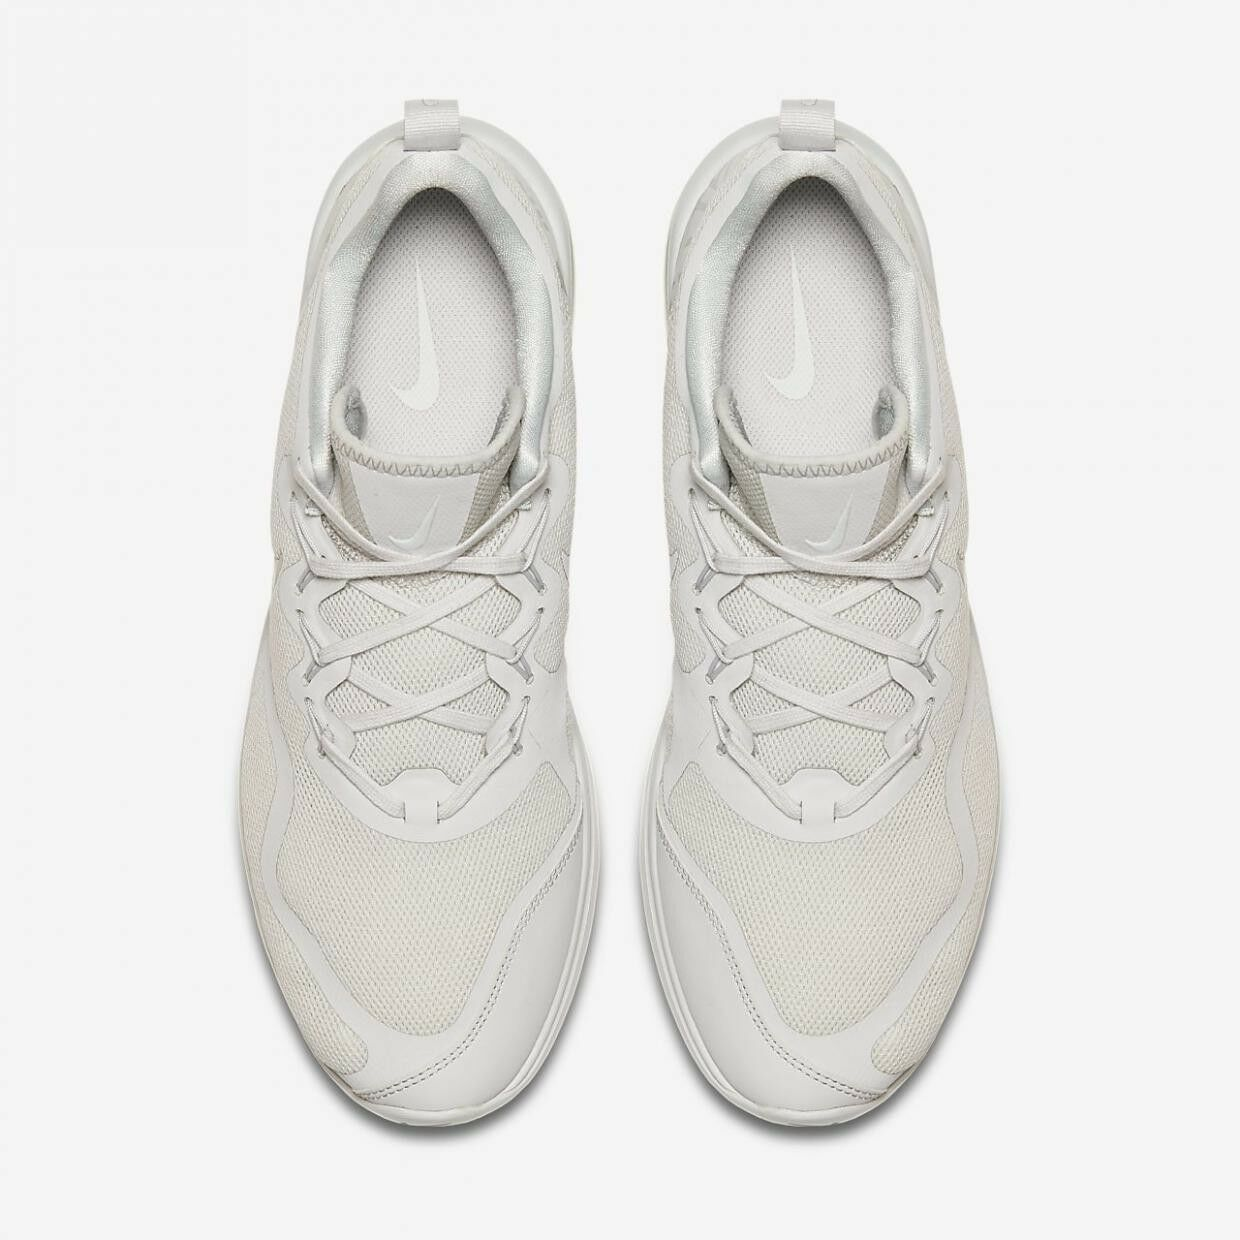 brand new 30d59 1e299 ... Nike SZ 10 Women s Air Max Max Max Fury Low Top Cross Trainer White Shoe  New ...